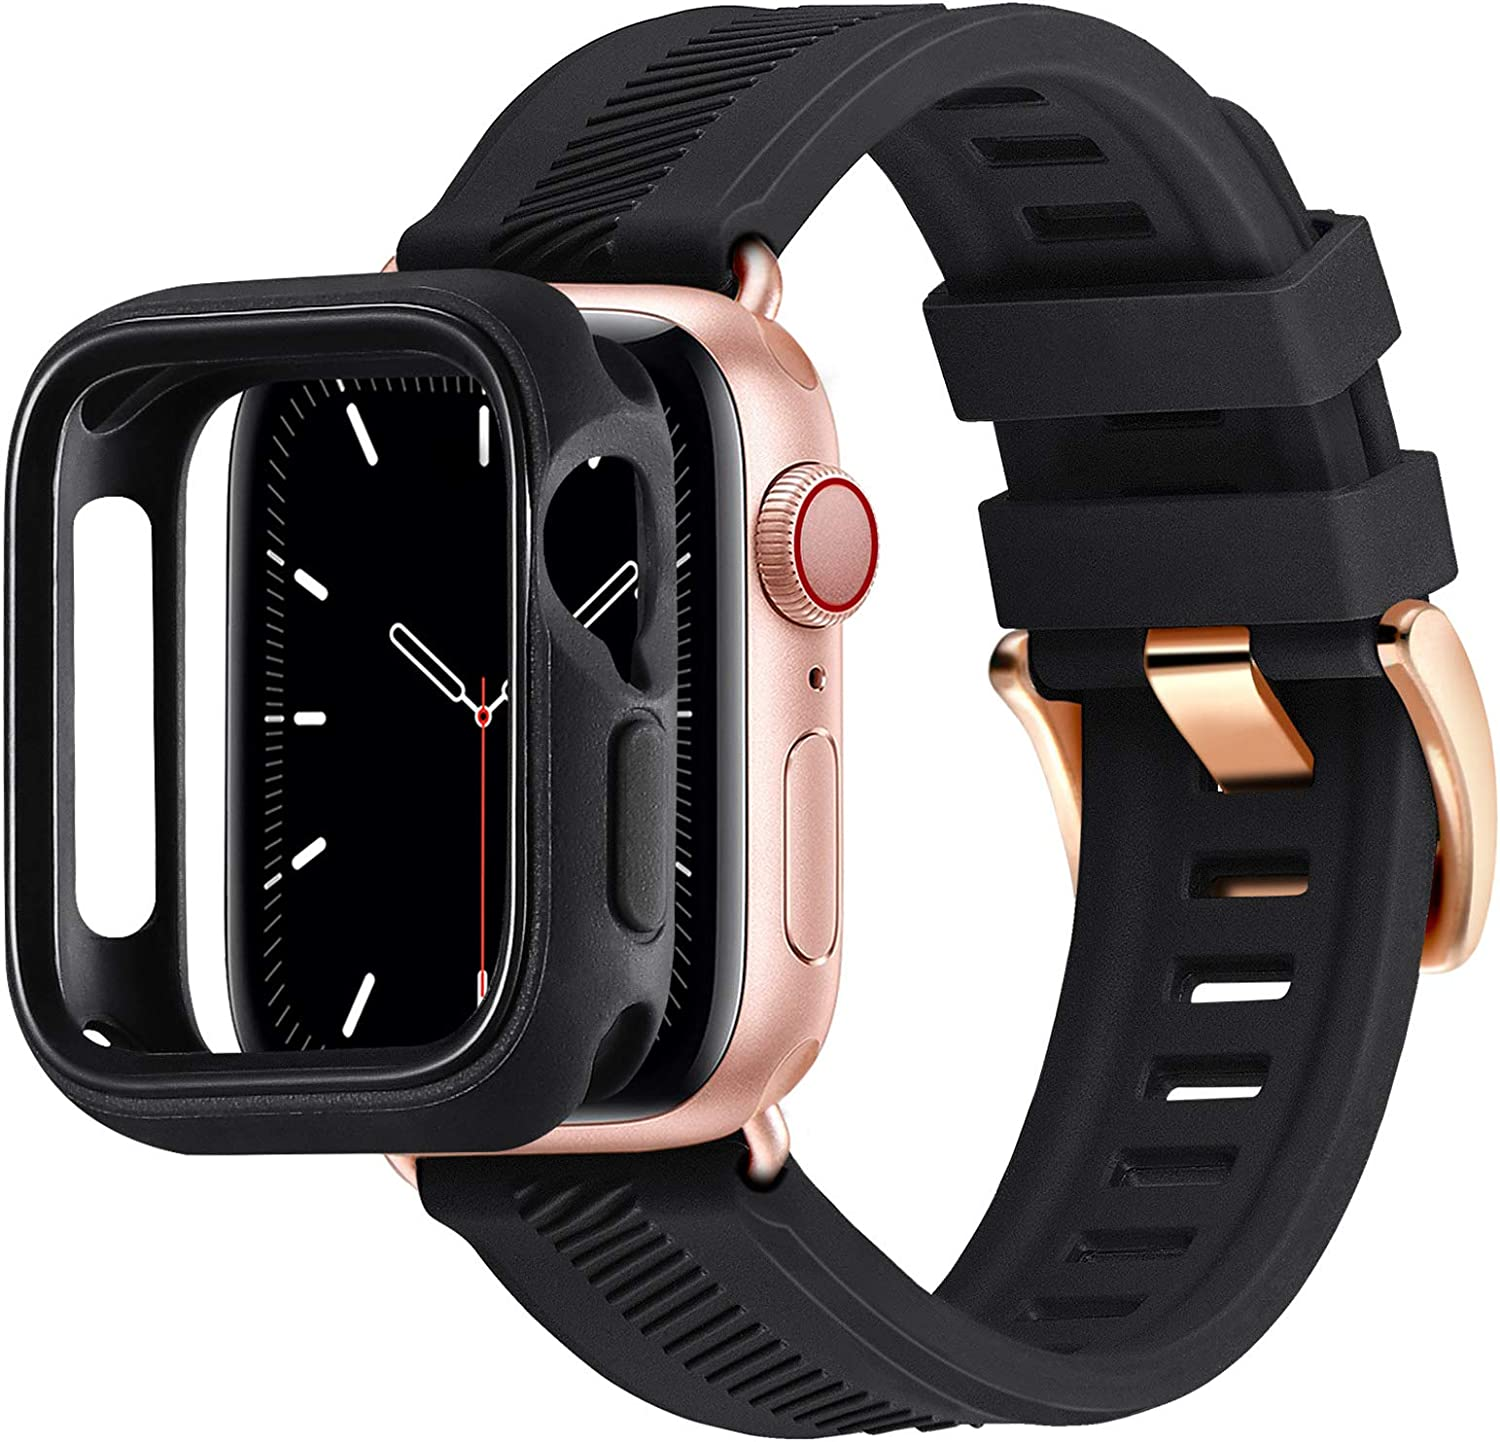 BesBand Compatible with Apple Watch Bands 44mm 42mm 40mm 38mm, Soft Silicone Waterproof Sport Band Loop with Protective Case for iWatch Series 6/5/4/3/2/1&SE (Black/Rose Gold, 38mm/40mm)